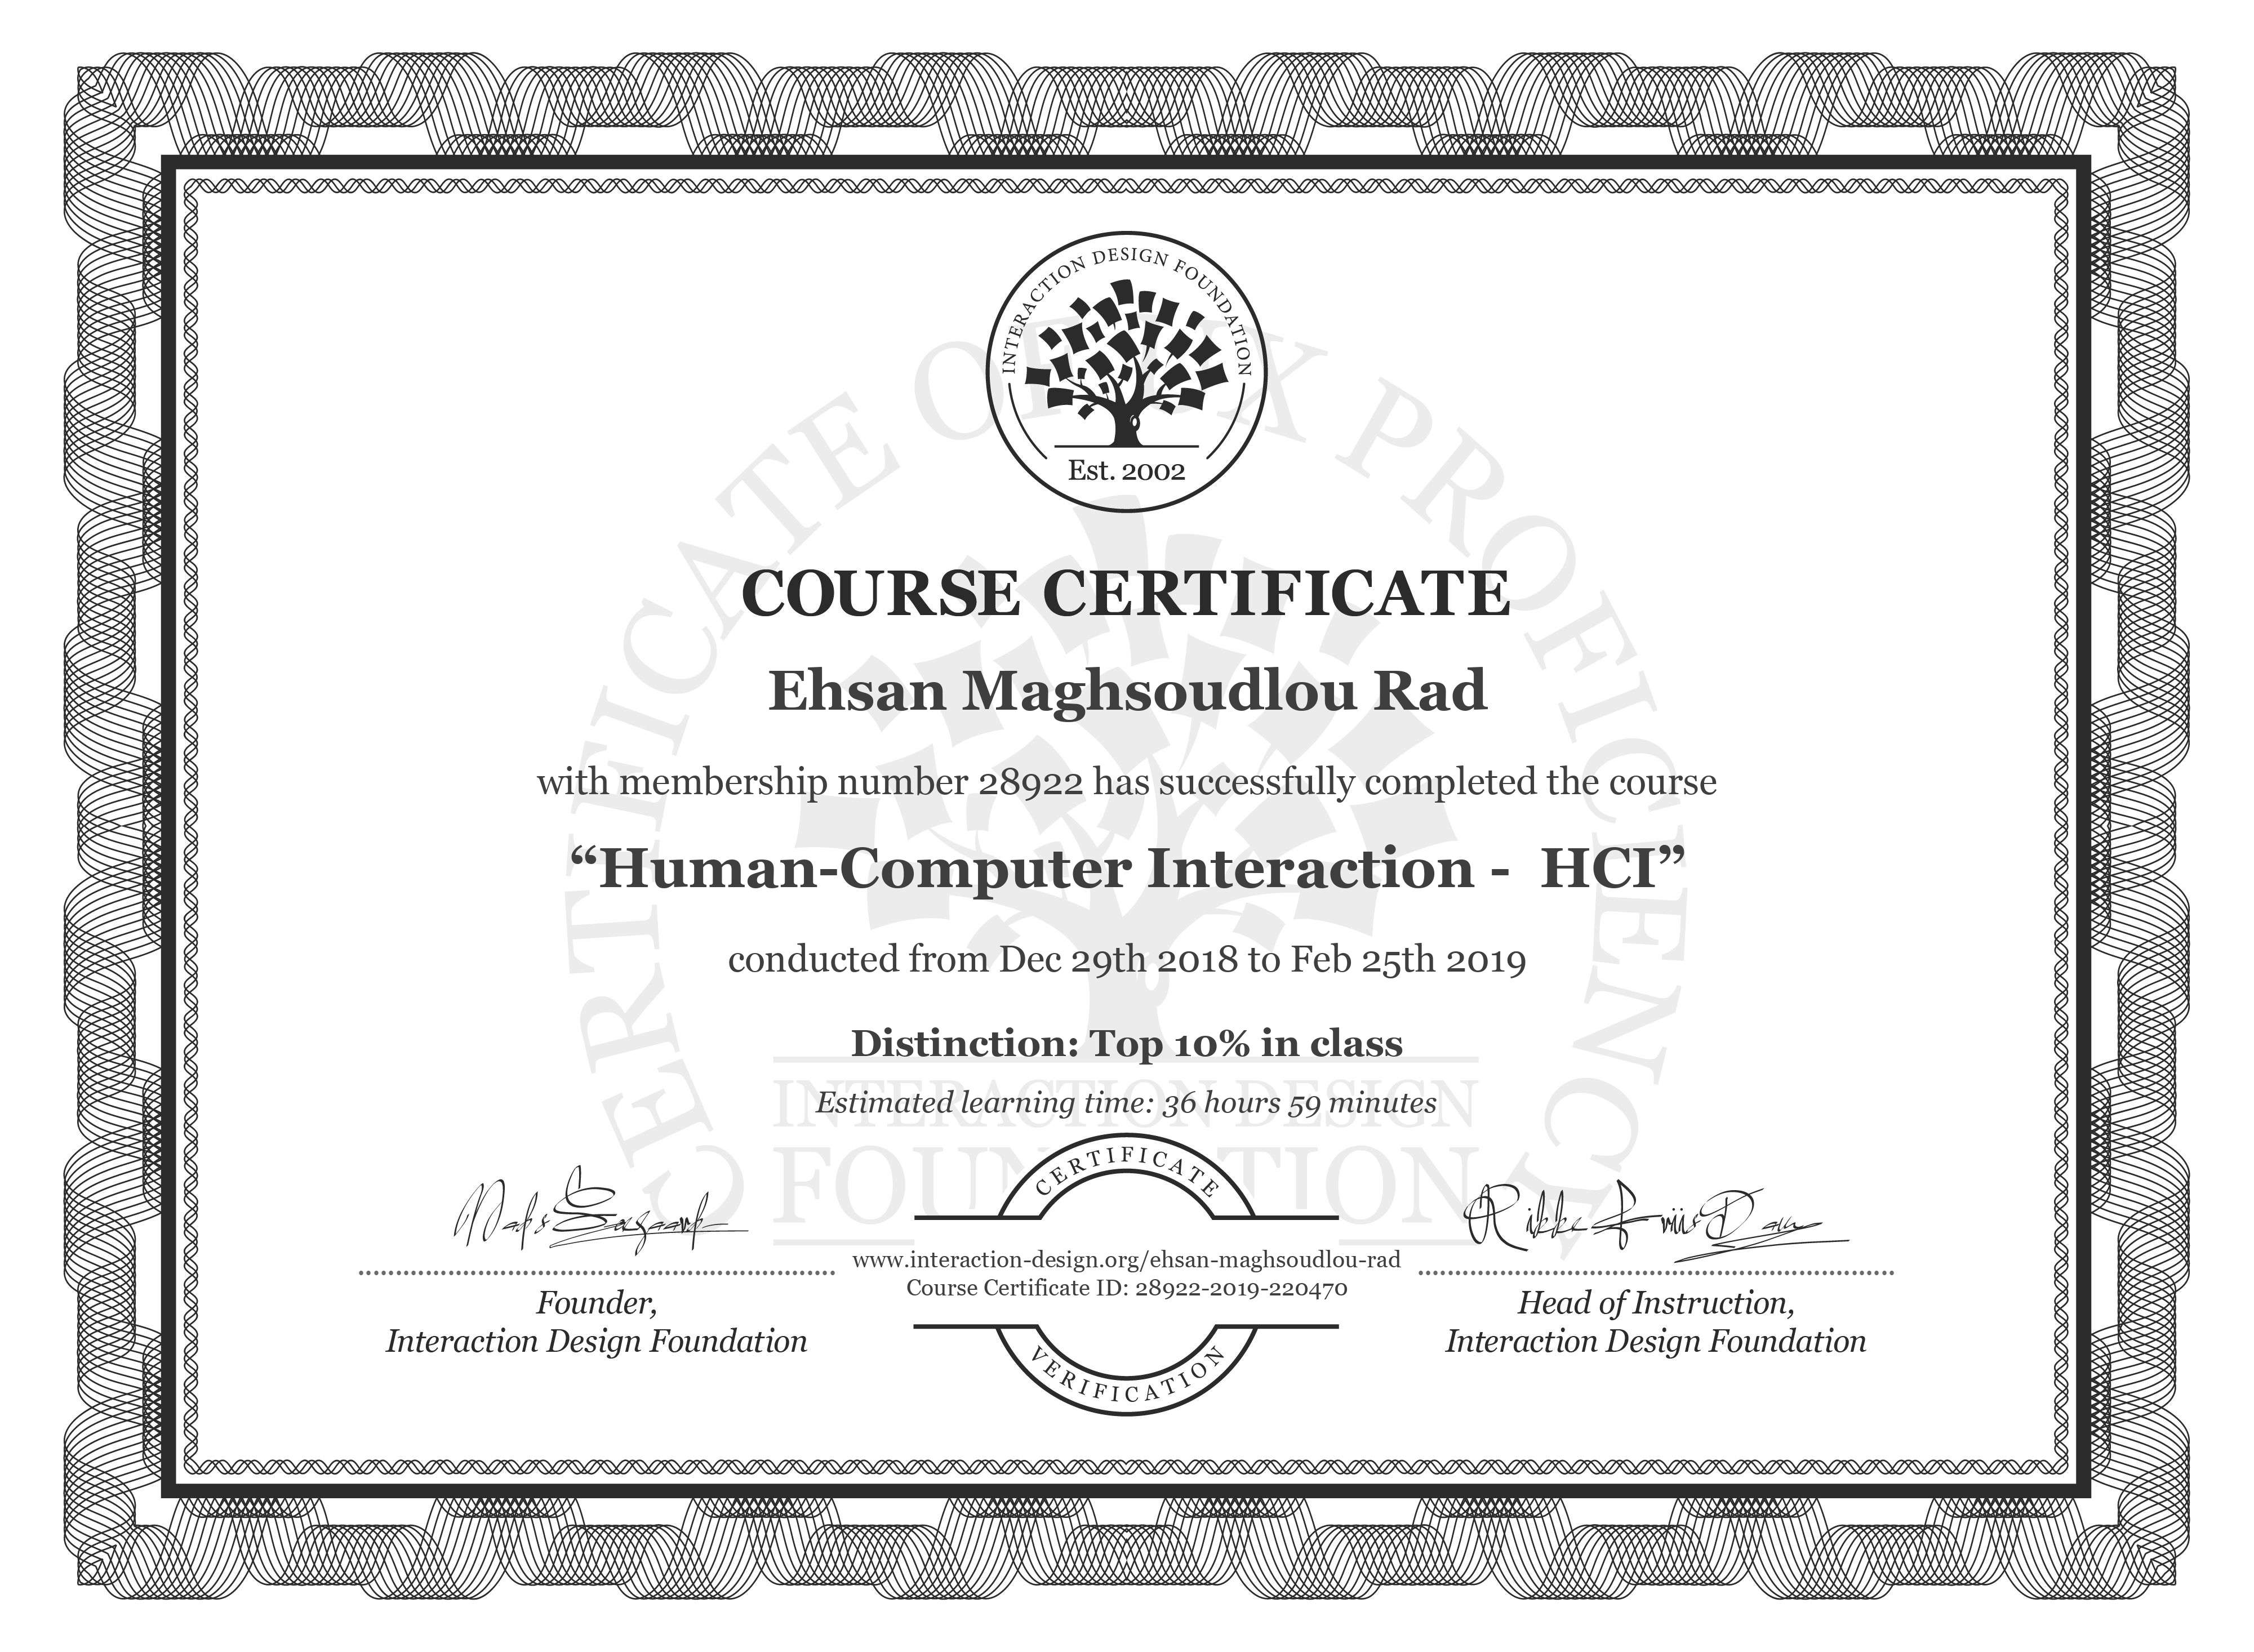 Ehsan Maghsoudlou Rad's Course Certificate: Human-Computer Interaction -  HCI